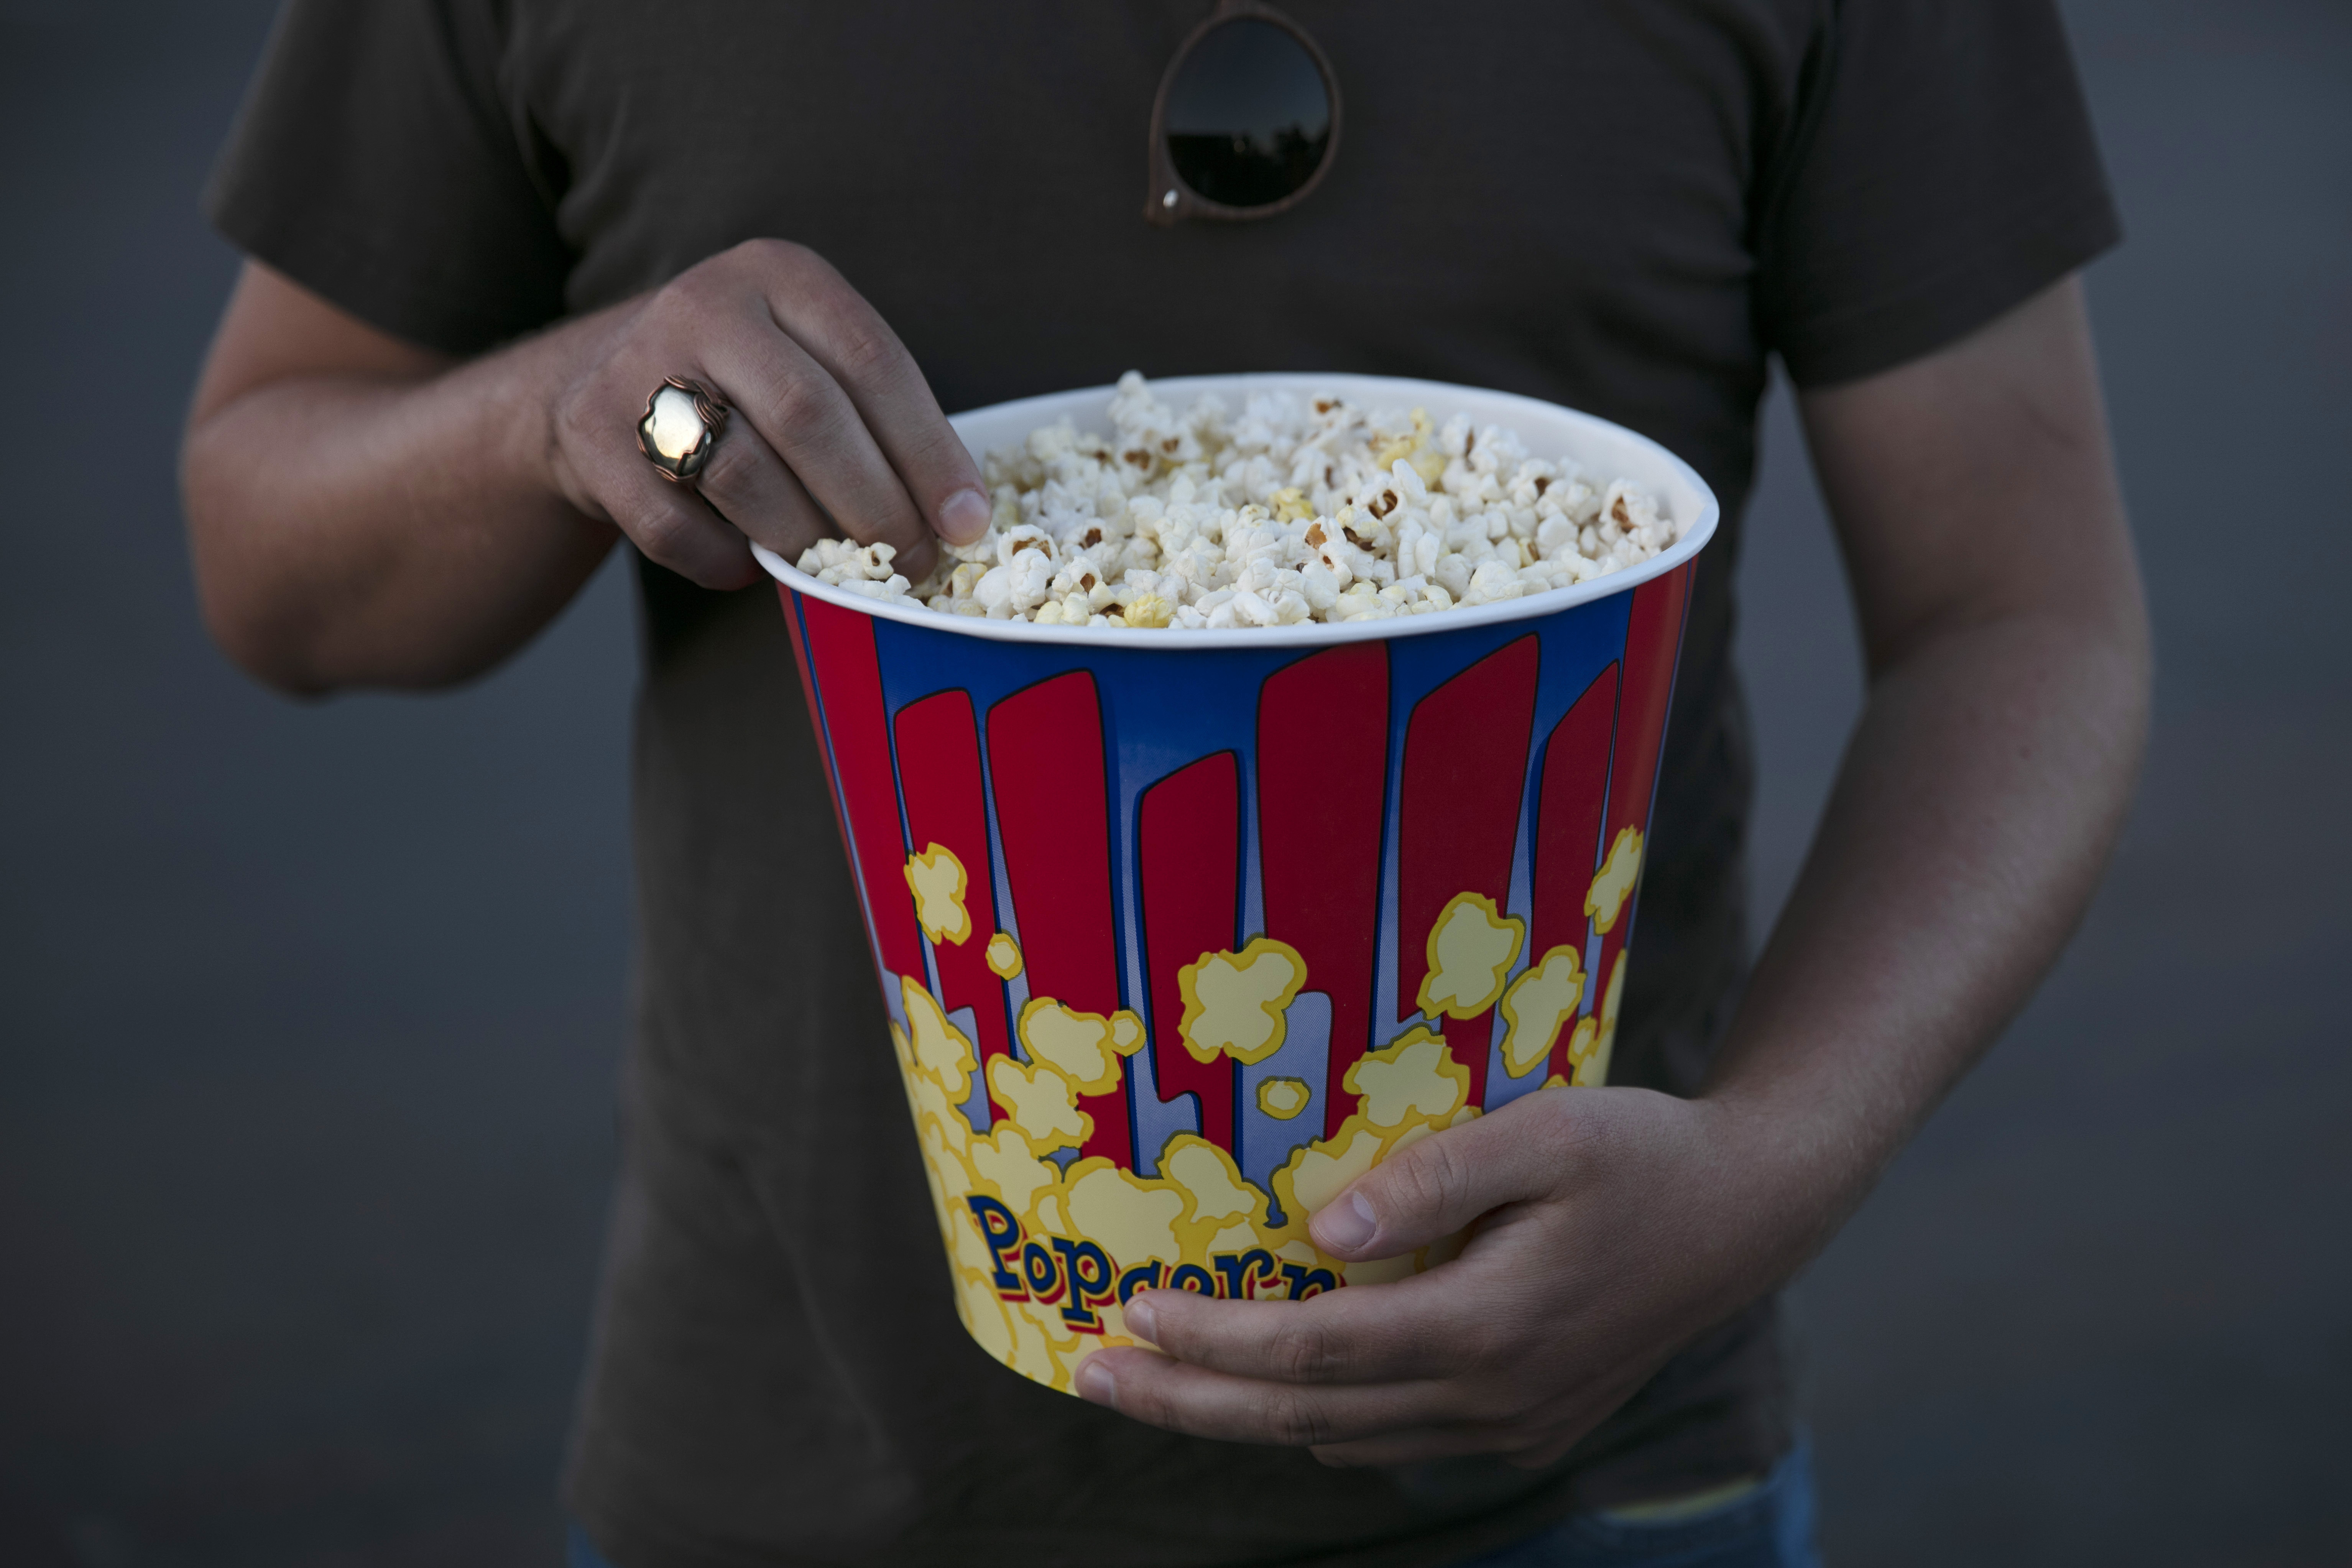 A moviegoer eats popcorn at Mission Tiki drive-in theater in Montclair, Calif., Thursday, May 28, 2020. California moved to further relax its coronavirus restrictions and help the battered economy. Flea markets, swap meets and drive-in movie theaters can resume operations. (AP Photo/Jae C. Hong)